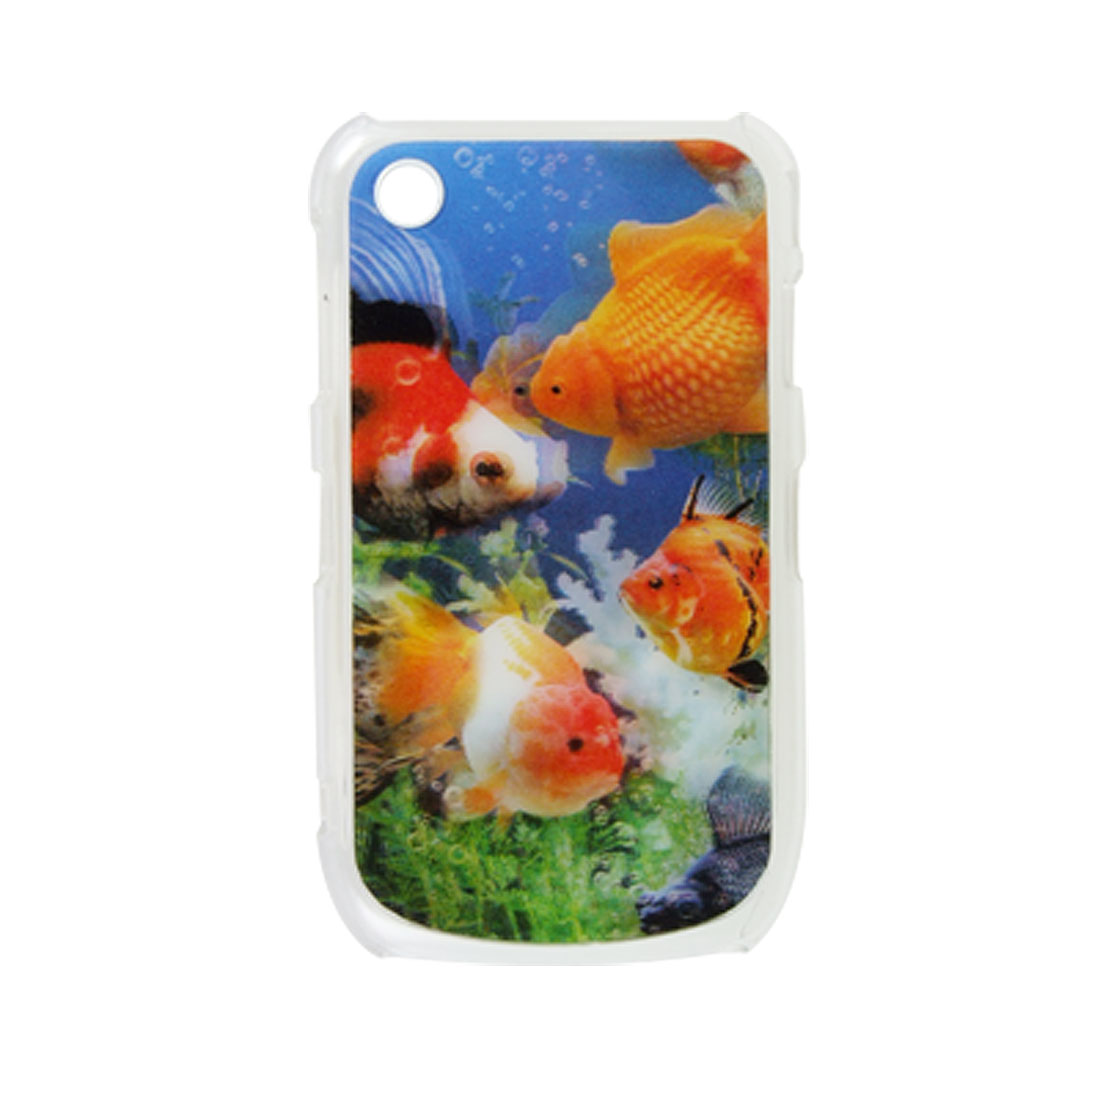 3D Fish Back Cover Plastic Case for BlackBerry 8520